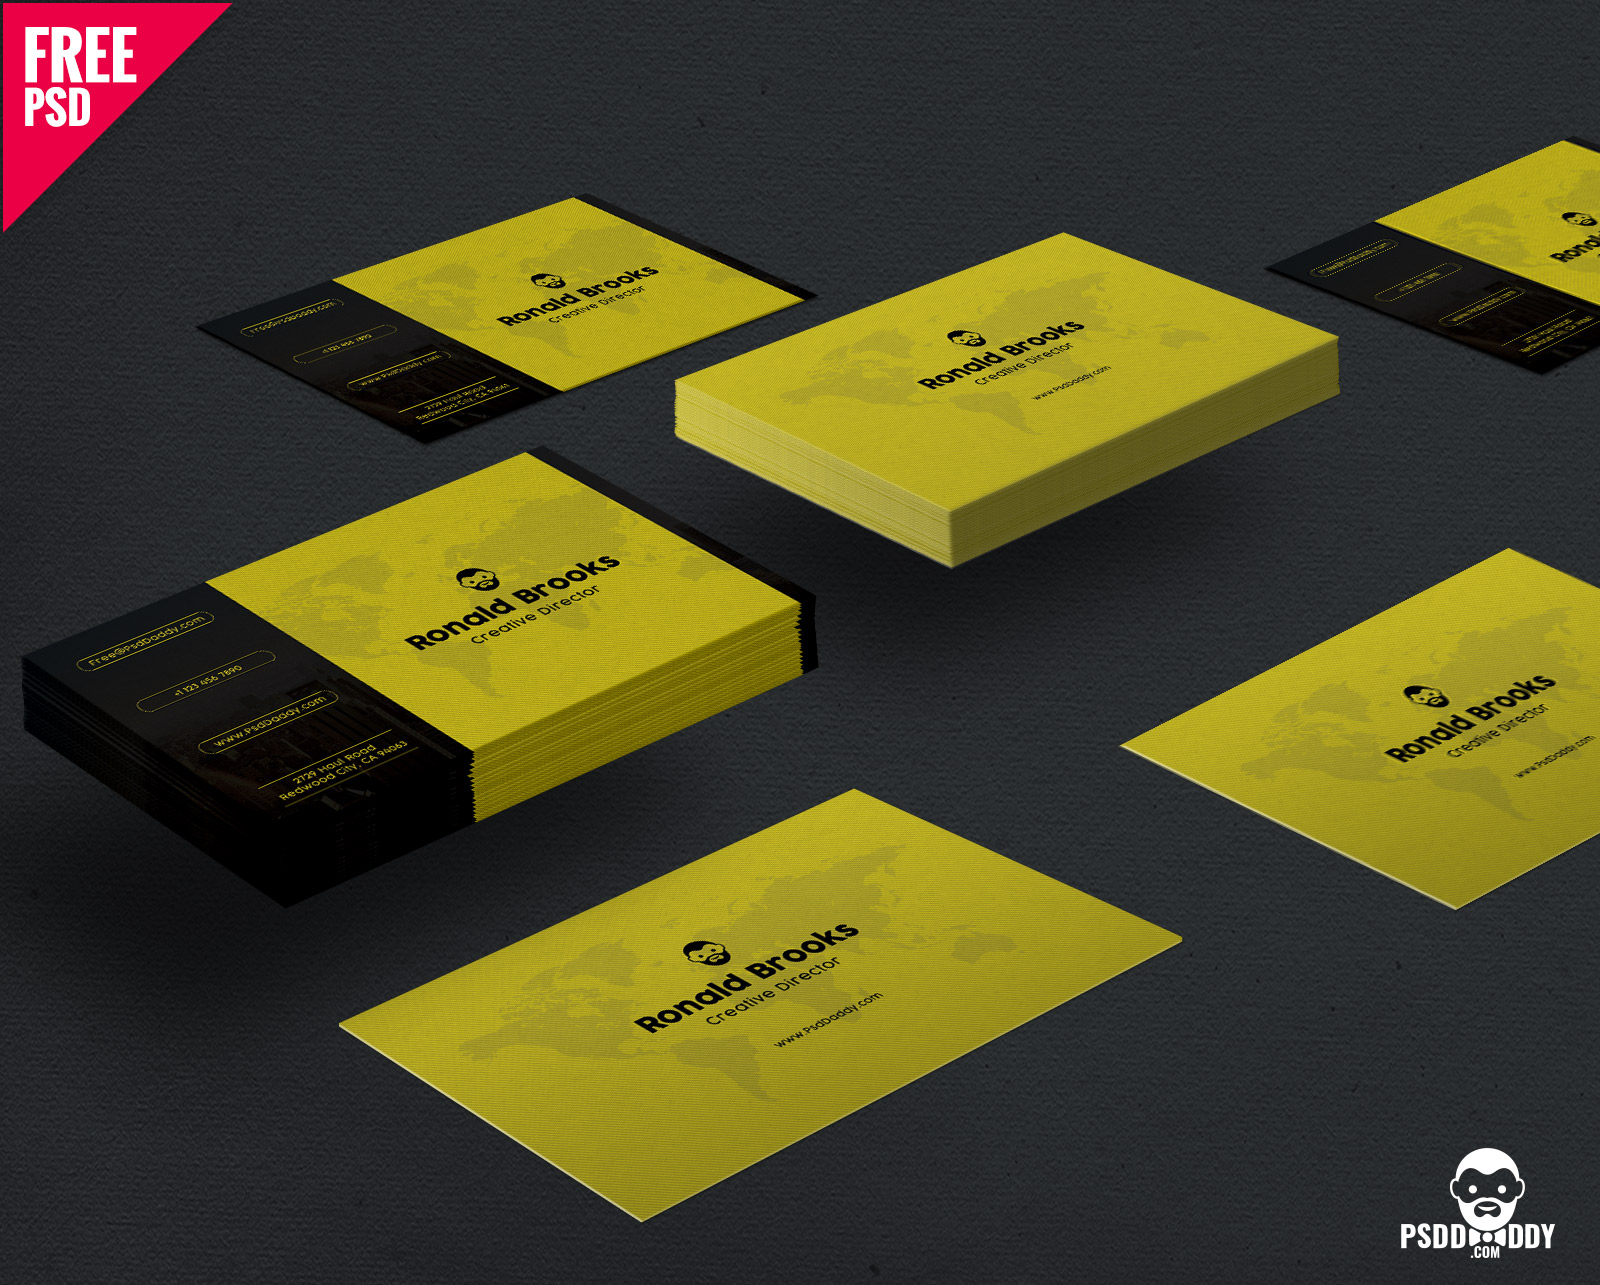 Download] Visiting Card Template Free PSD | PsdDaddy.com